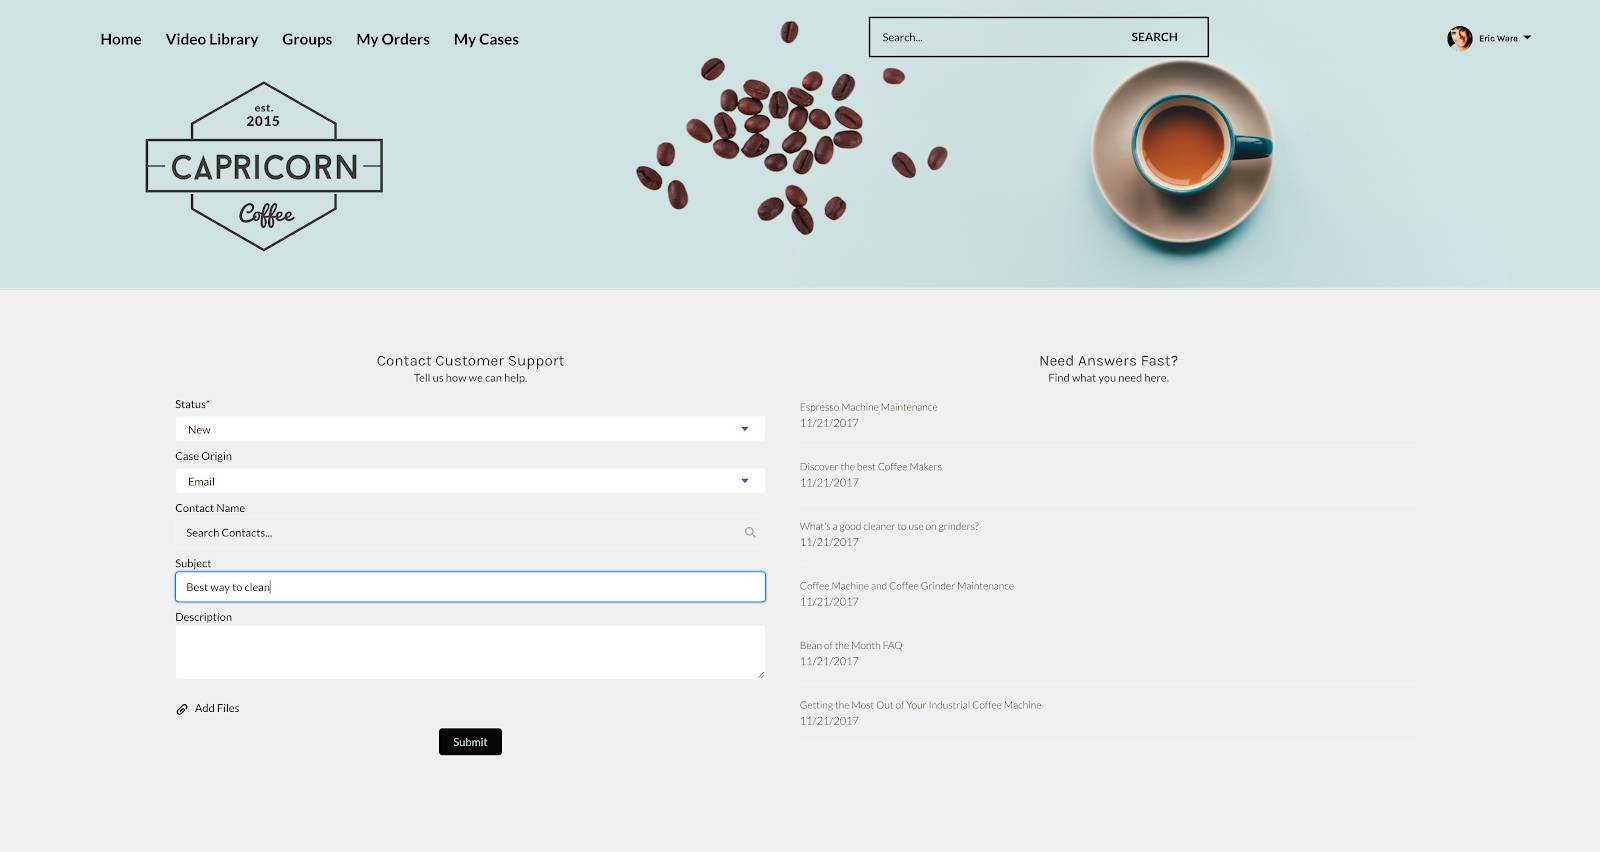 A sample online community for Capricorn Coffee with a web form for submitting cases